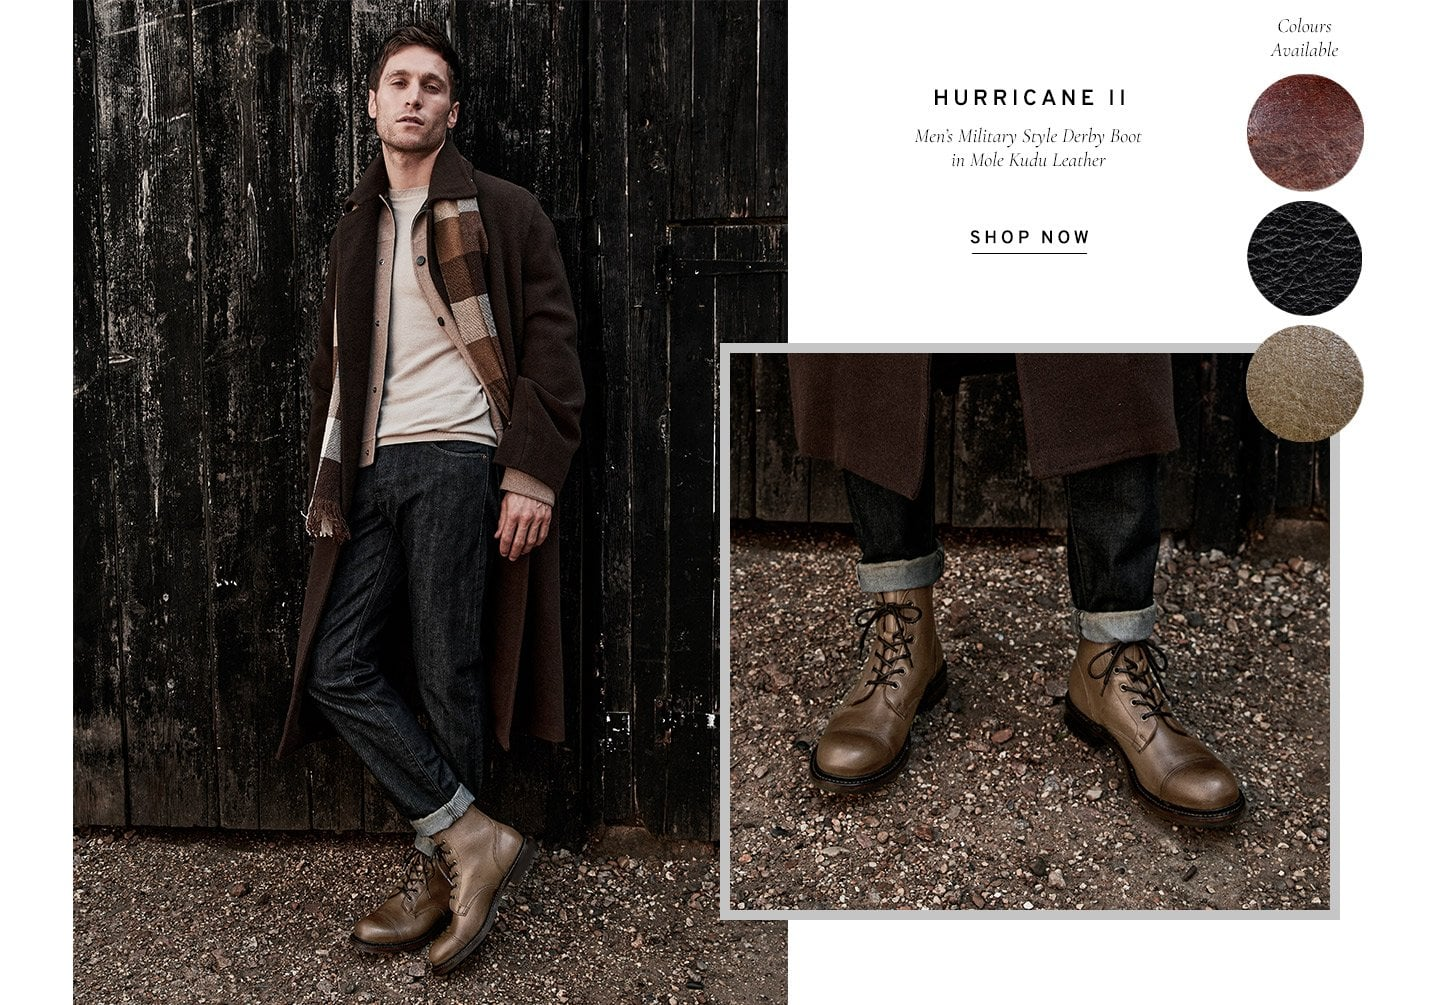 Hurricane II Men's Military Style Derby Boots